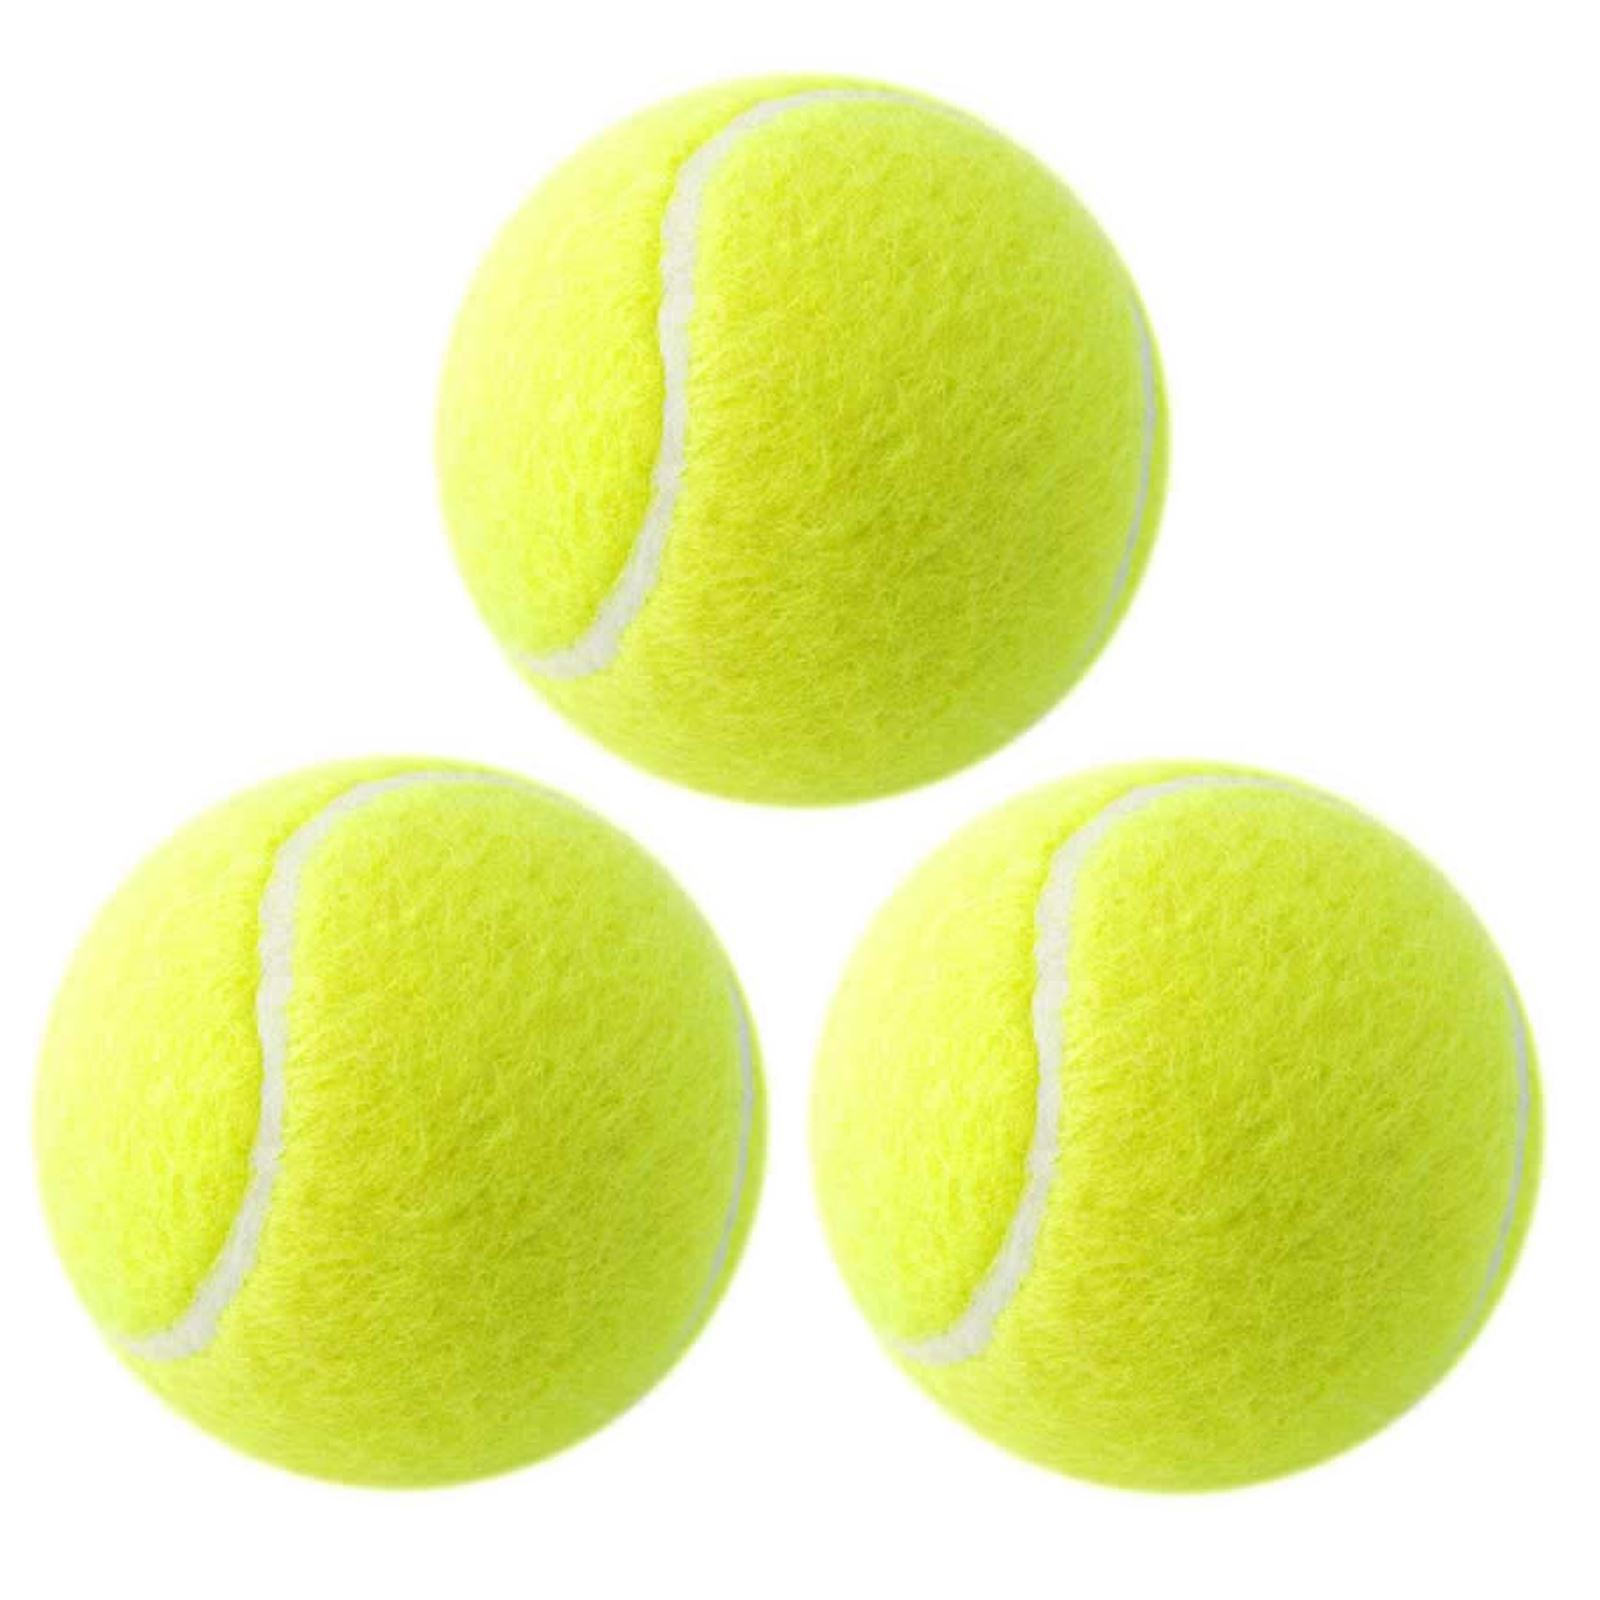 Cricket Tennis Ball   Yellow  Pack of 3  REMEMBER QUALITY